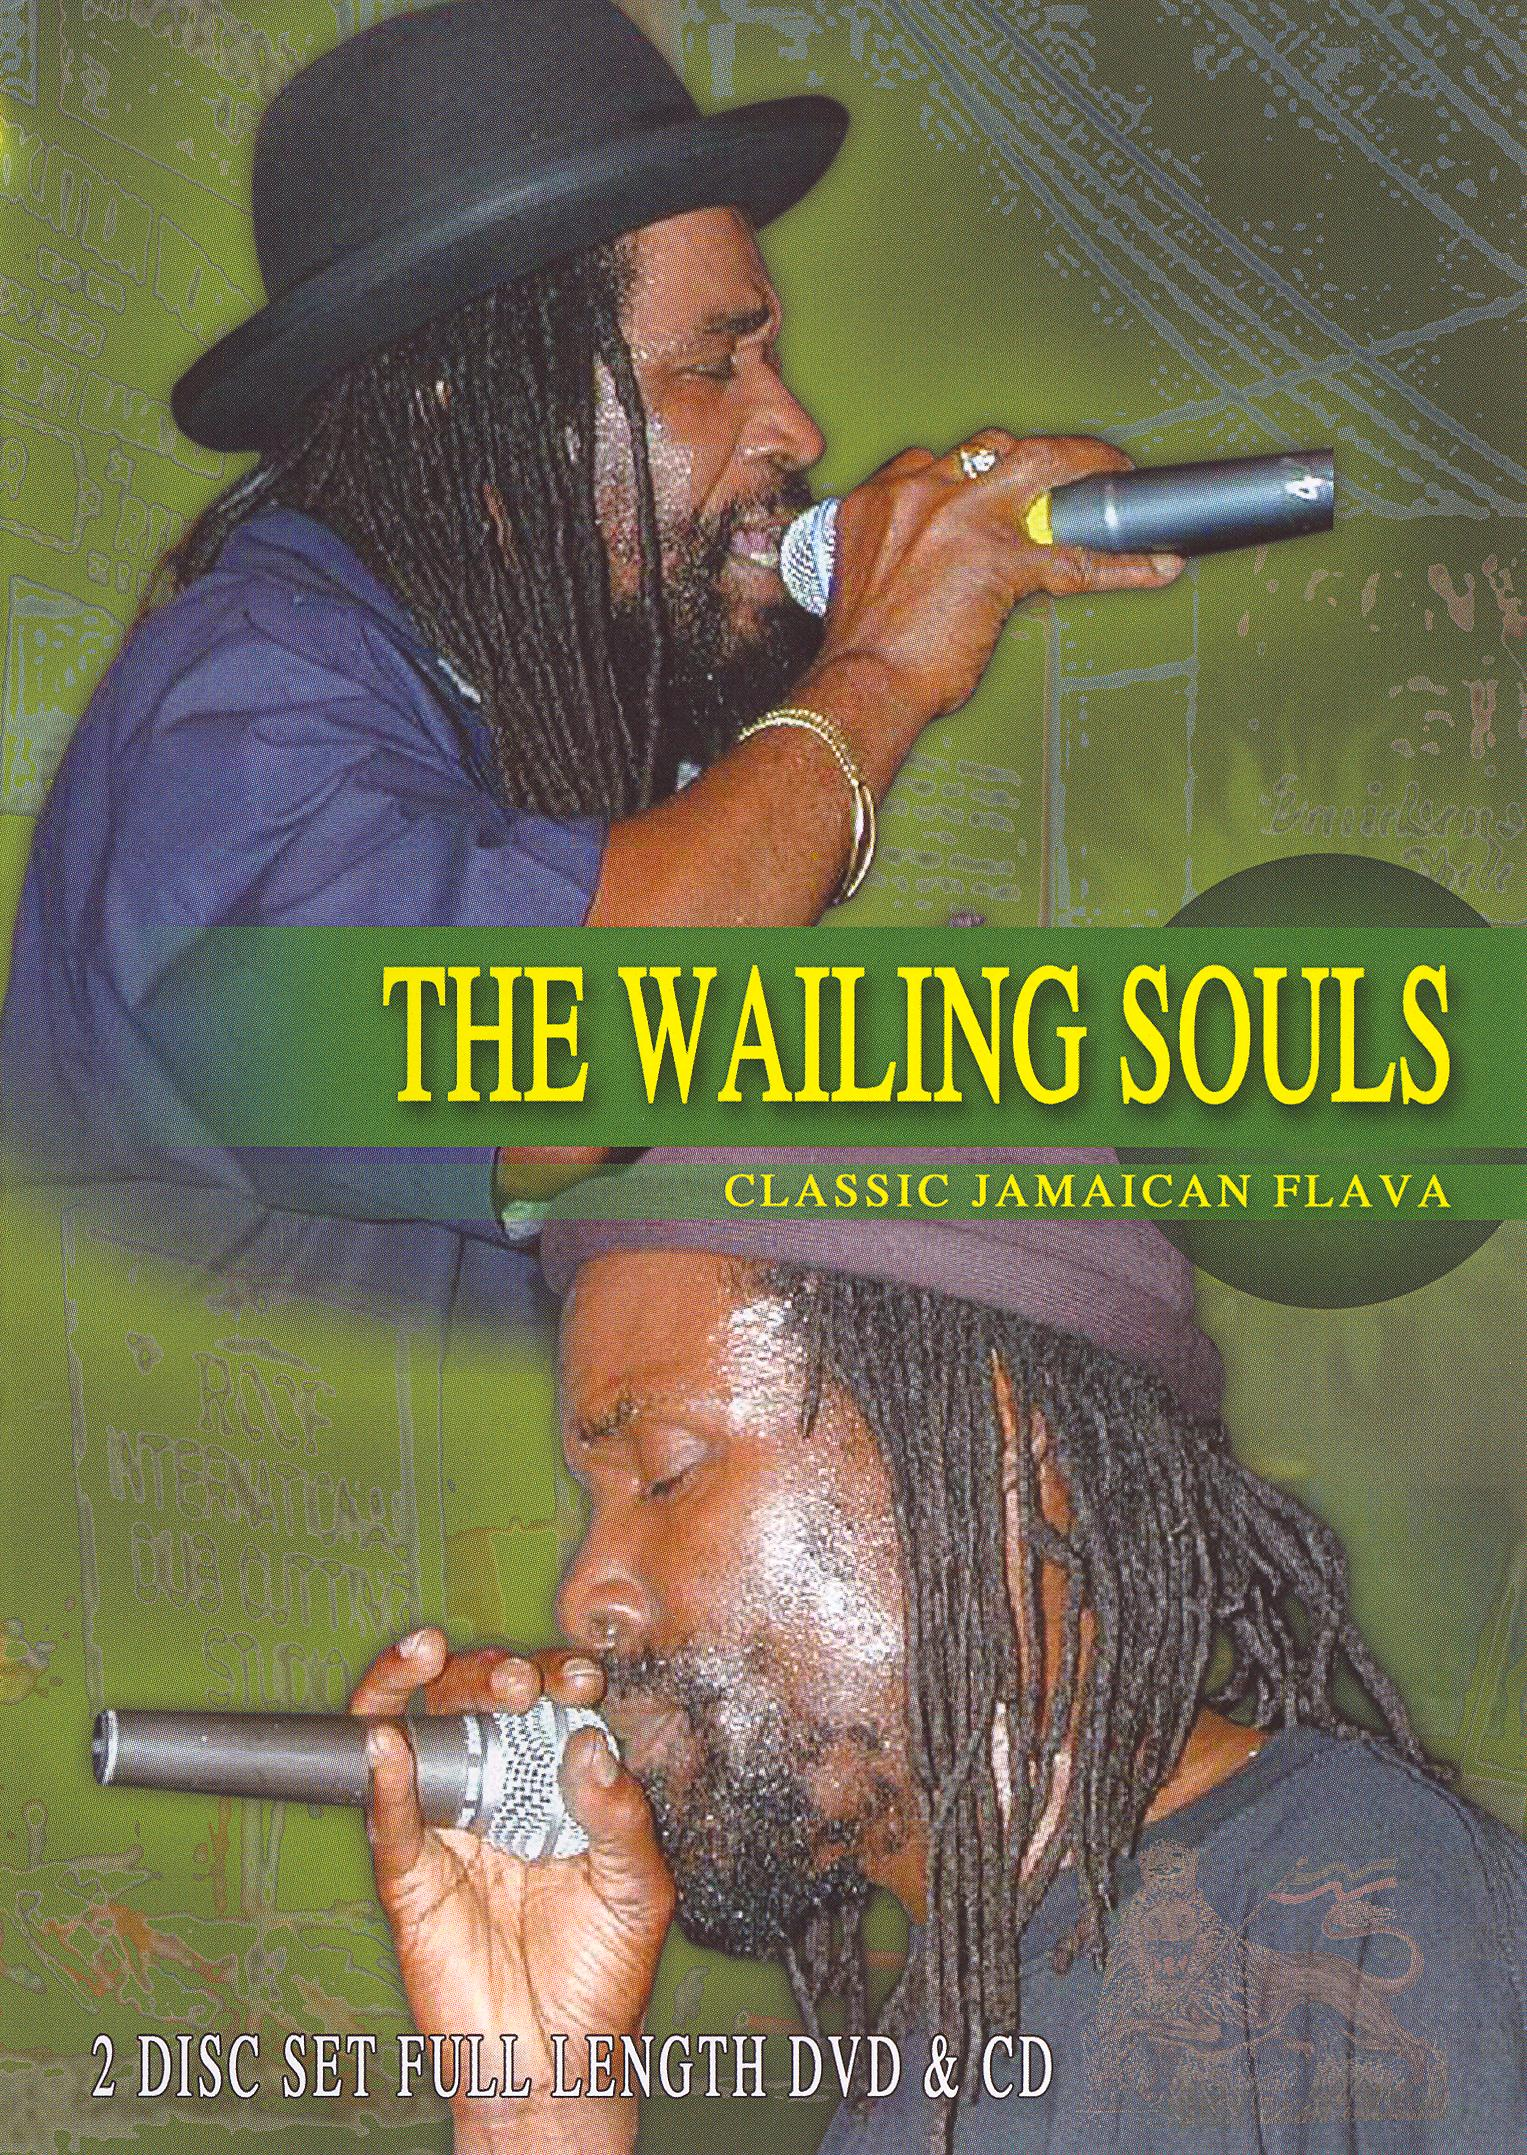 The Wailing Souls: Live in San Francisco - Classic Jamaican Flava